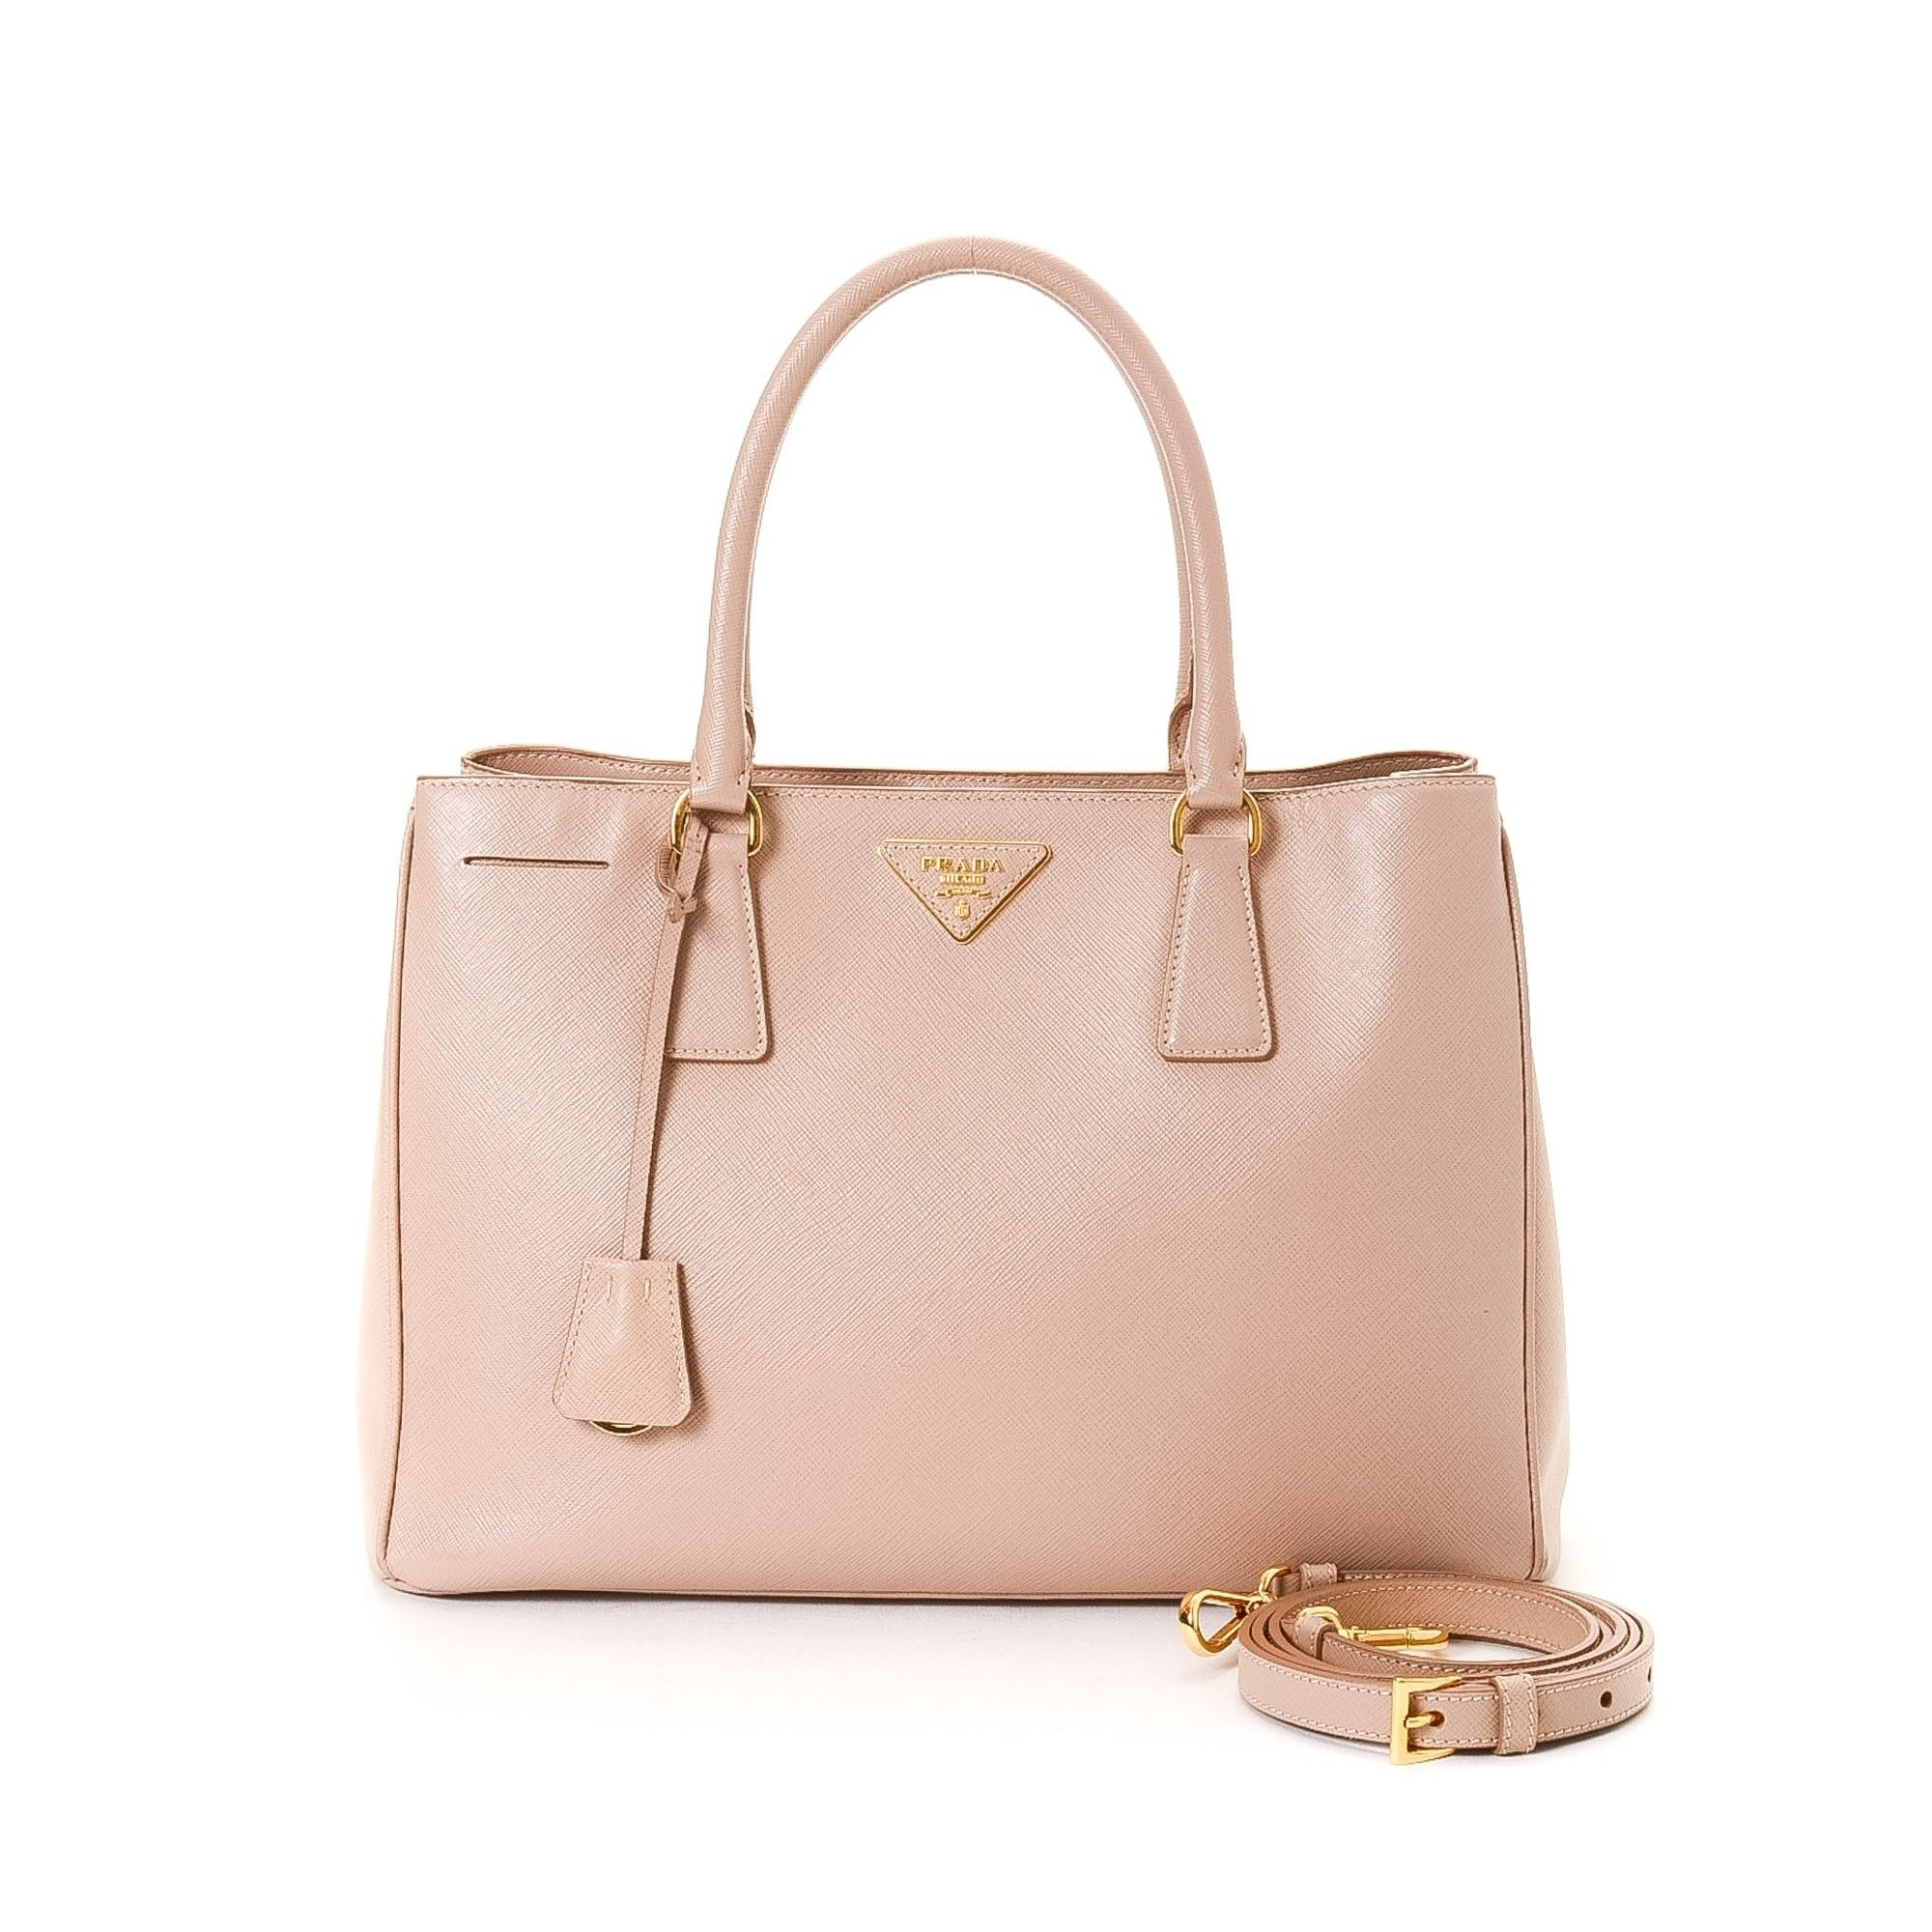 Prada Saffiano Lux Two Way Bag Pink Beige Calf Tote  0eb150c675a9e